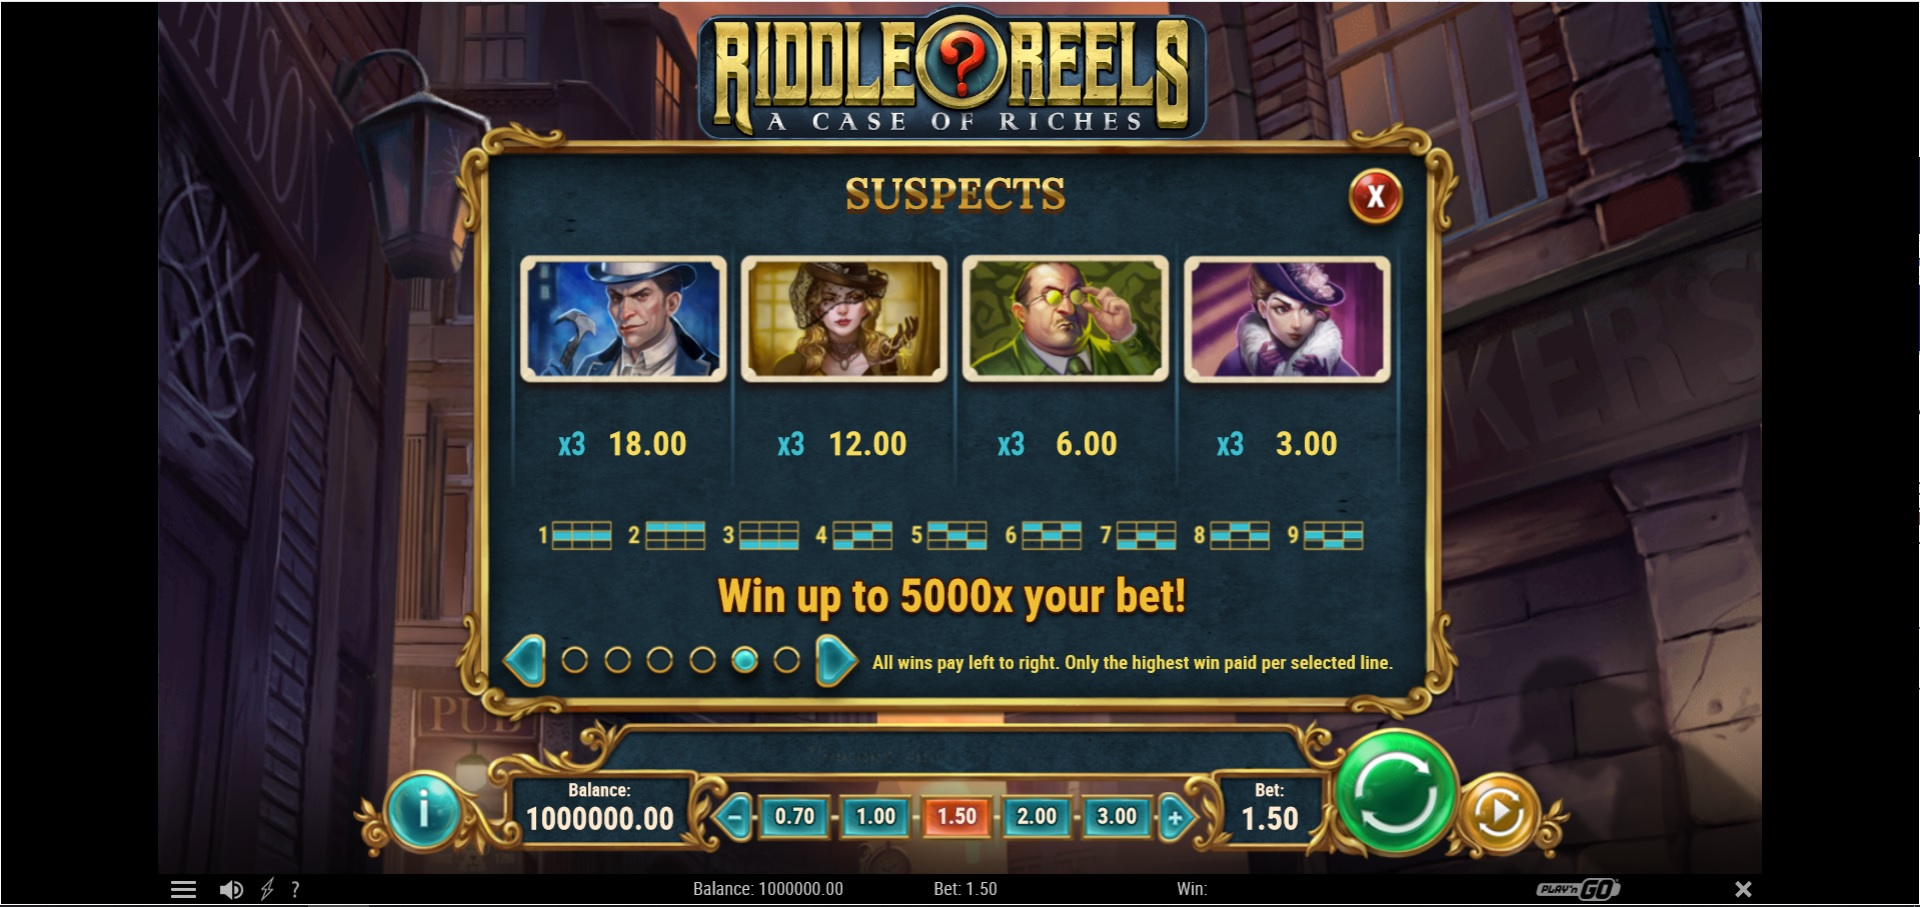 Riddle Reels Splash Screen showing